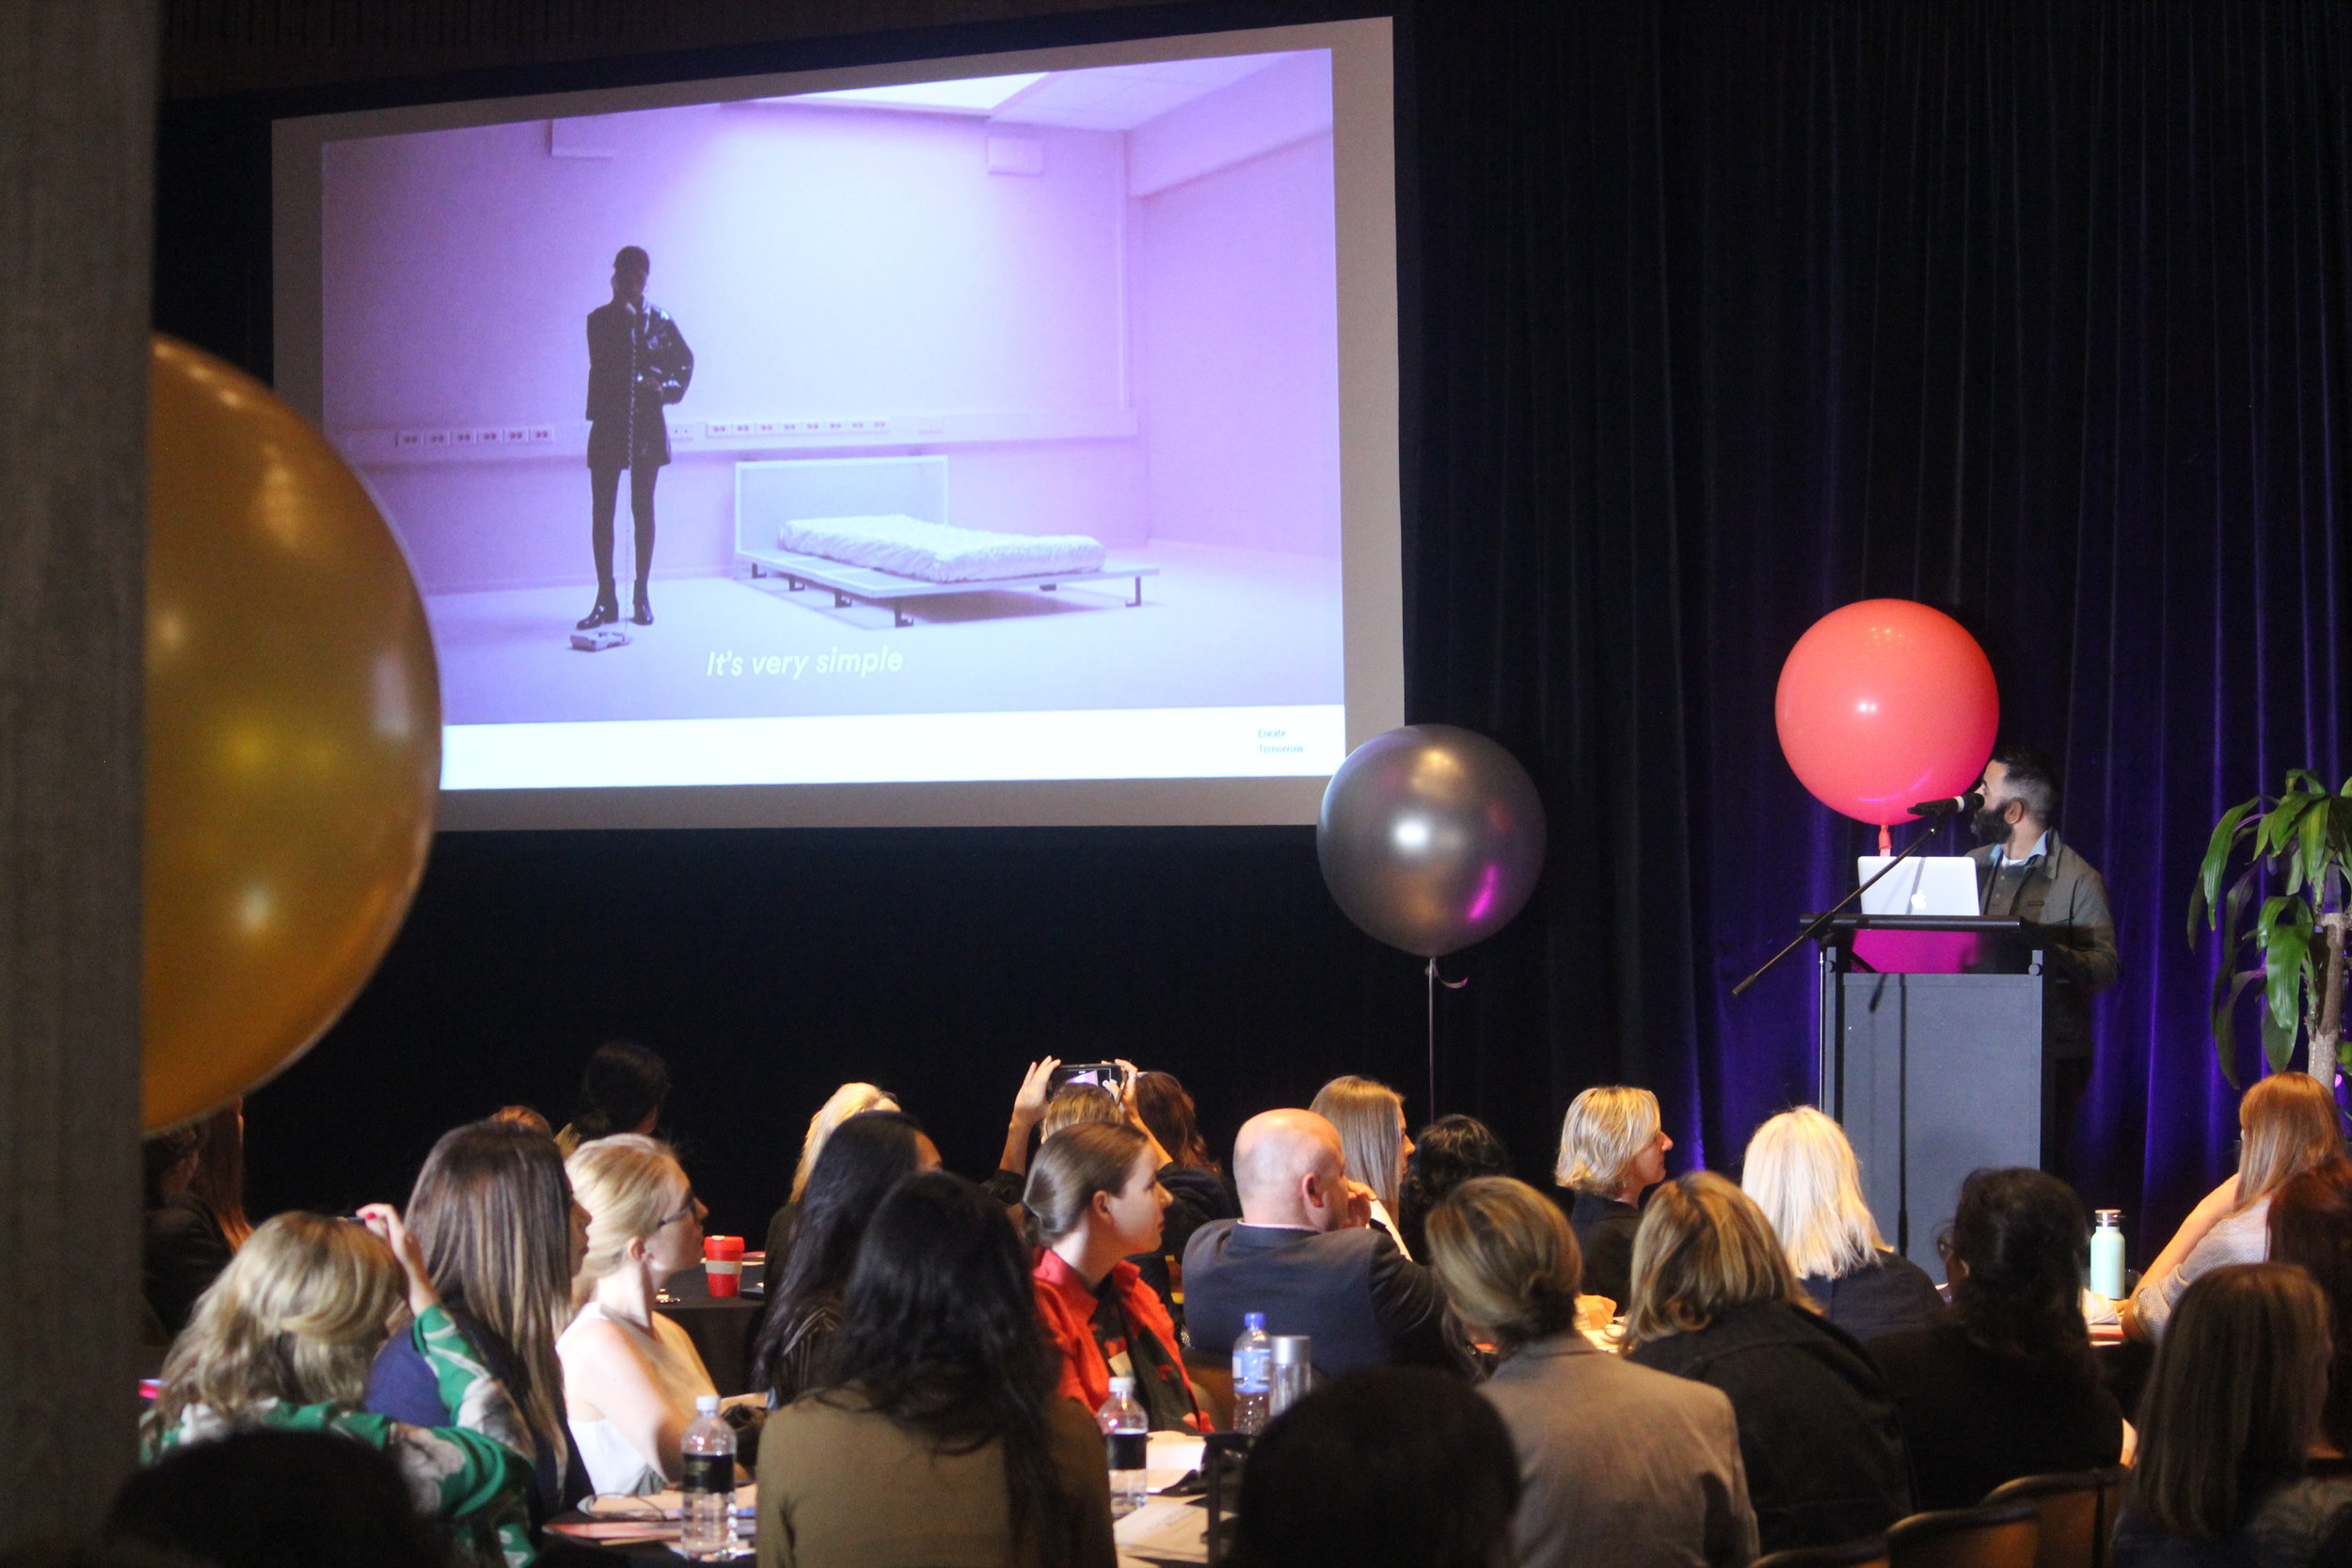 Photograph courtesy of the Australian Circular Fashion Conference